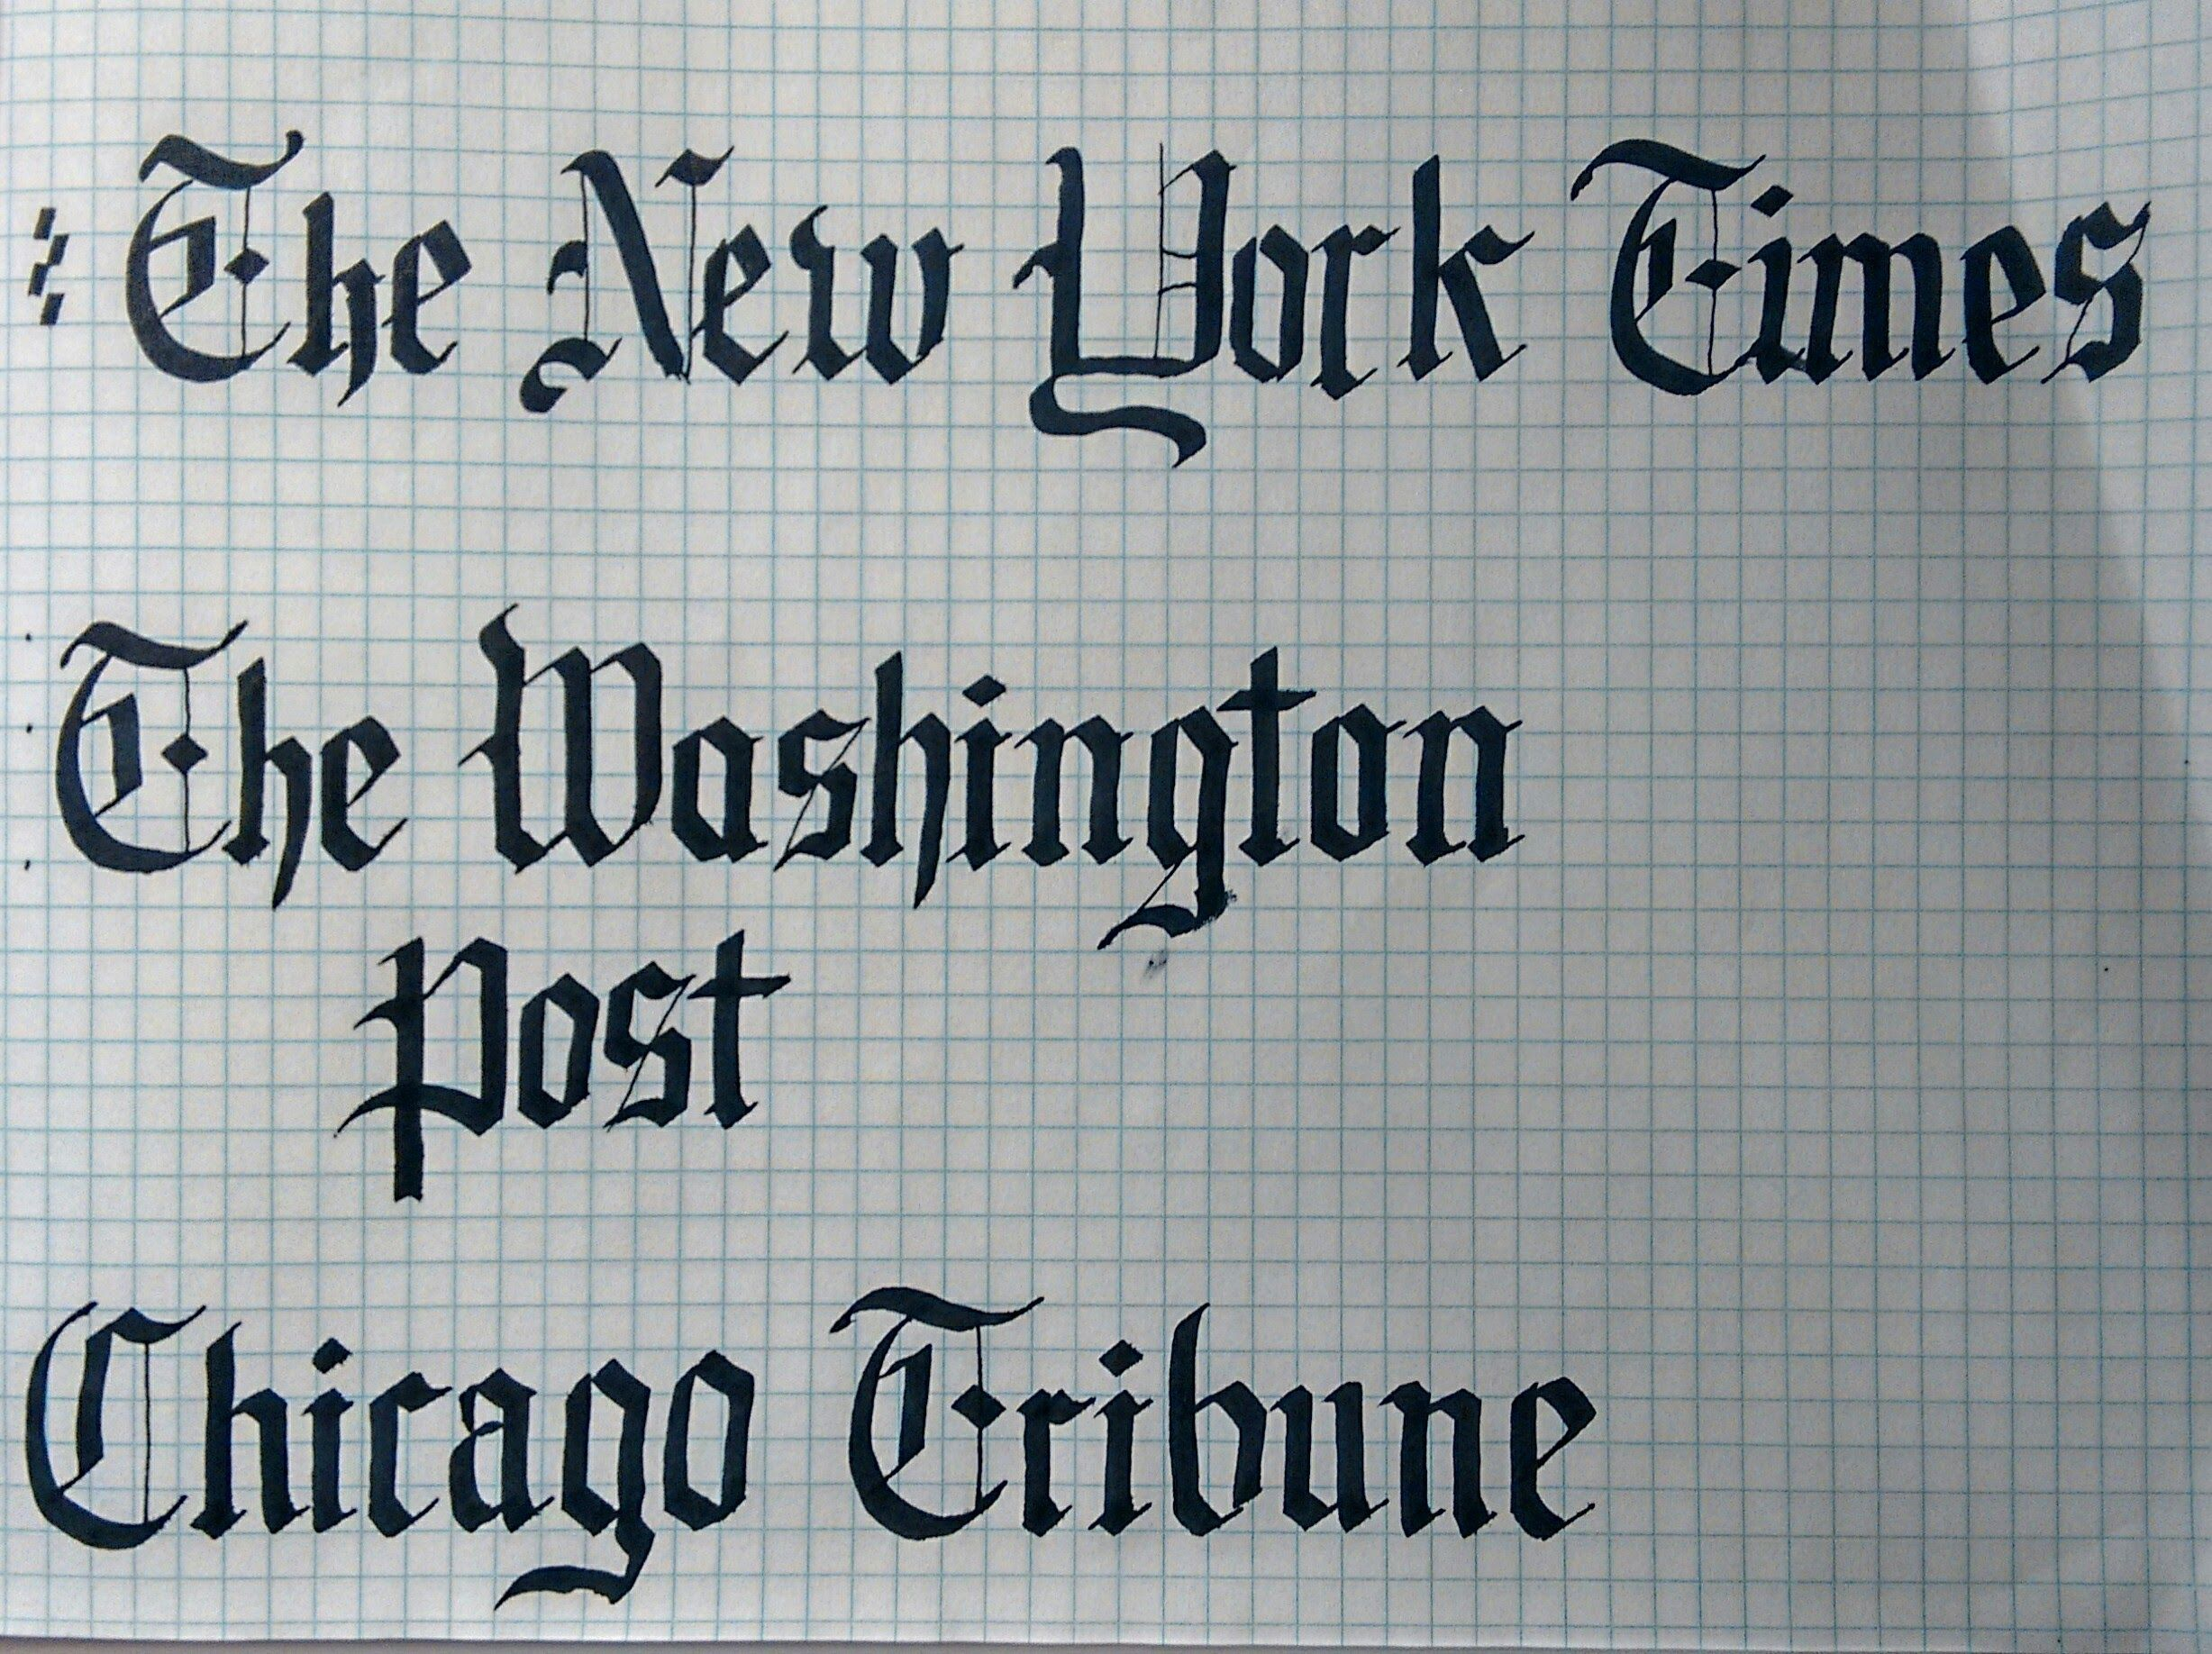 Gothic style calligraphy practice the new york times